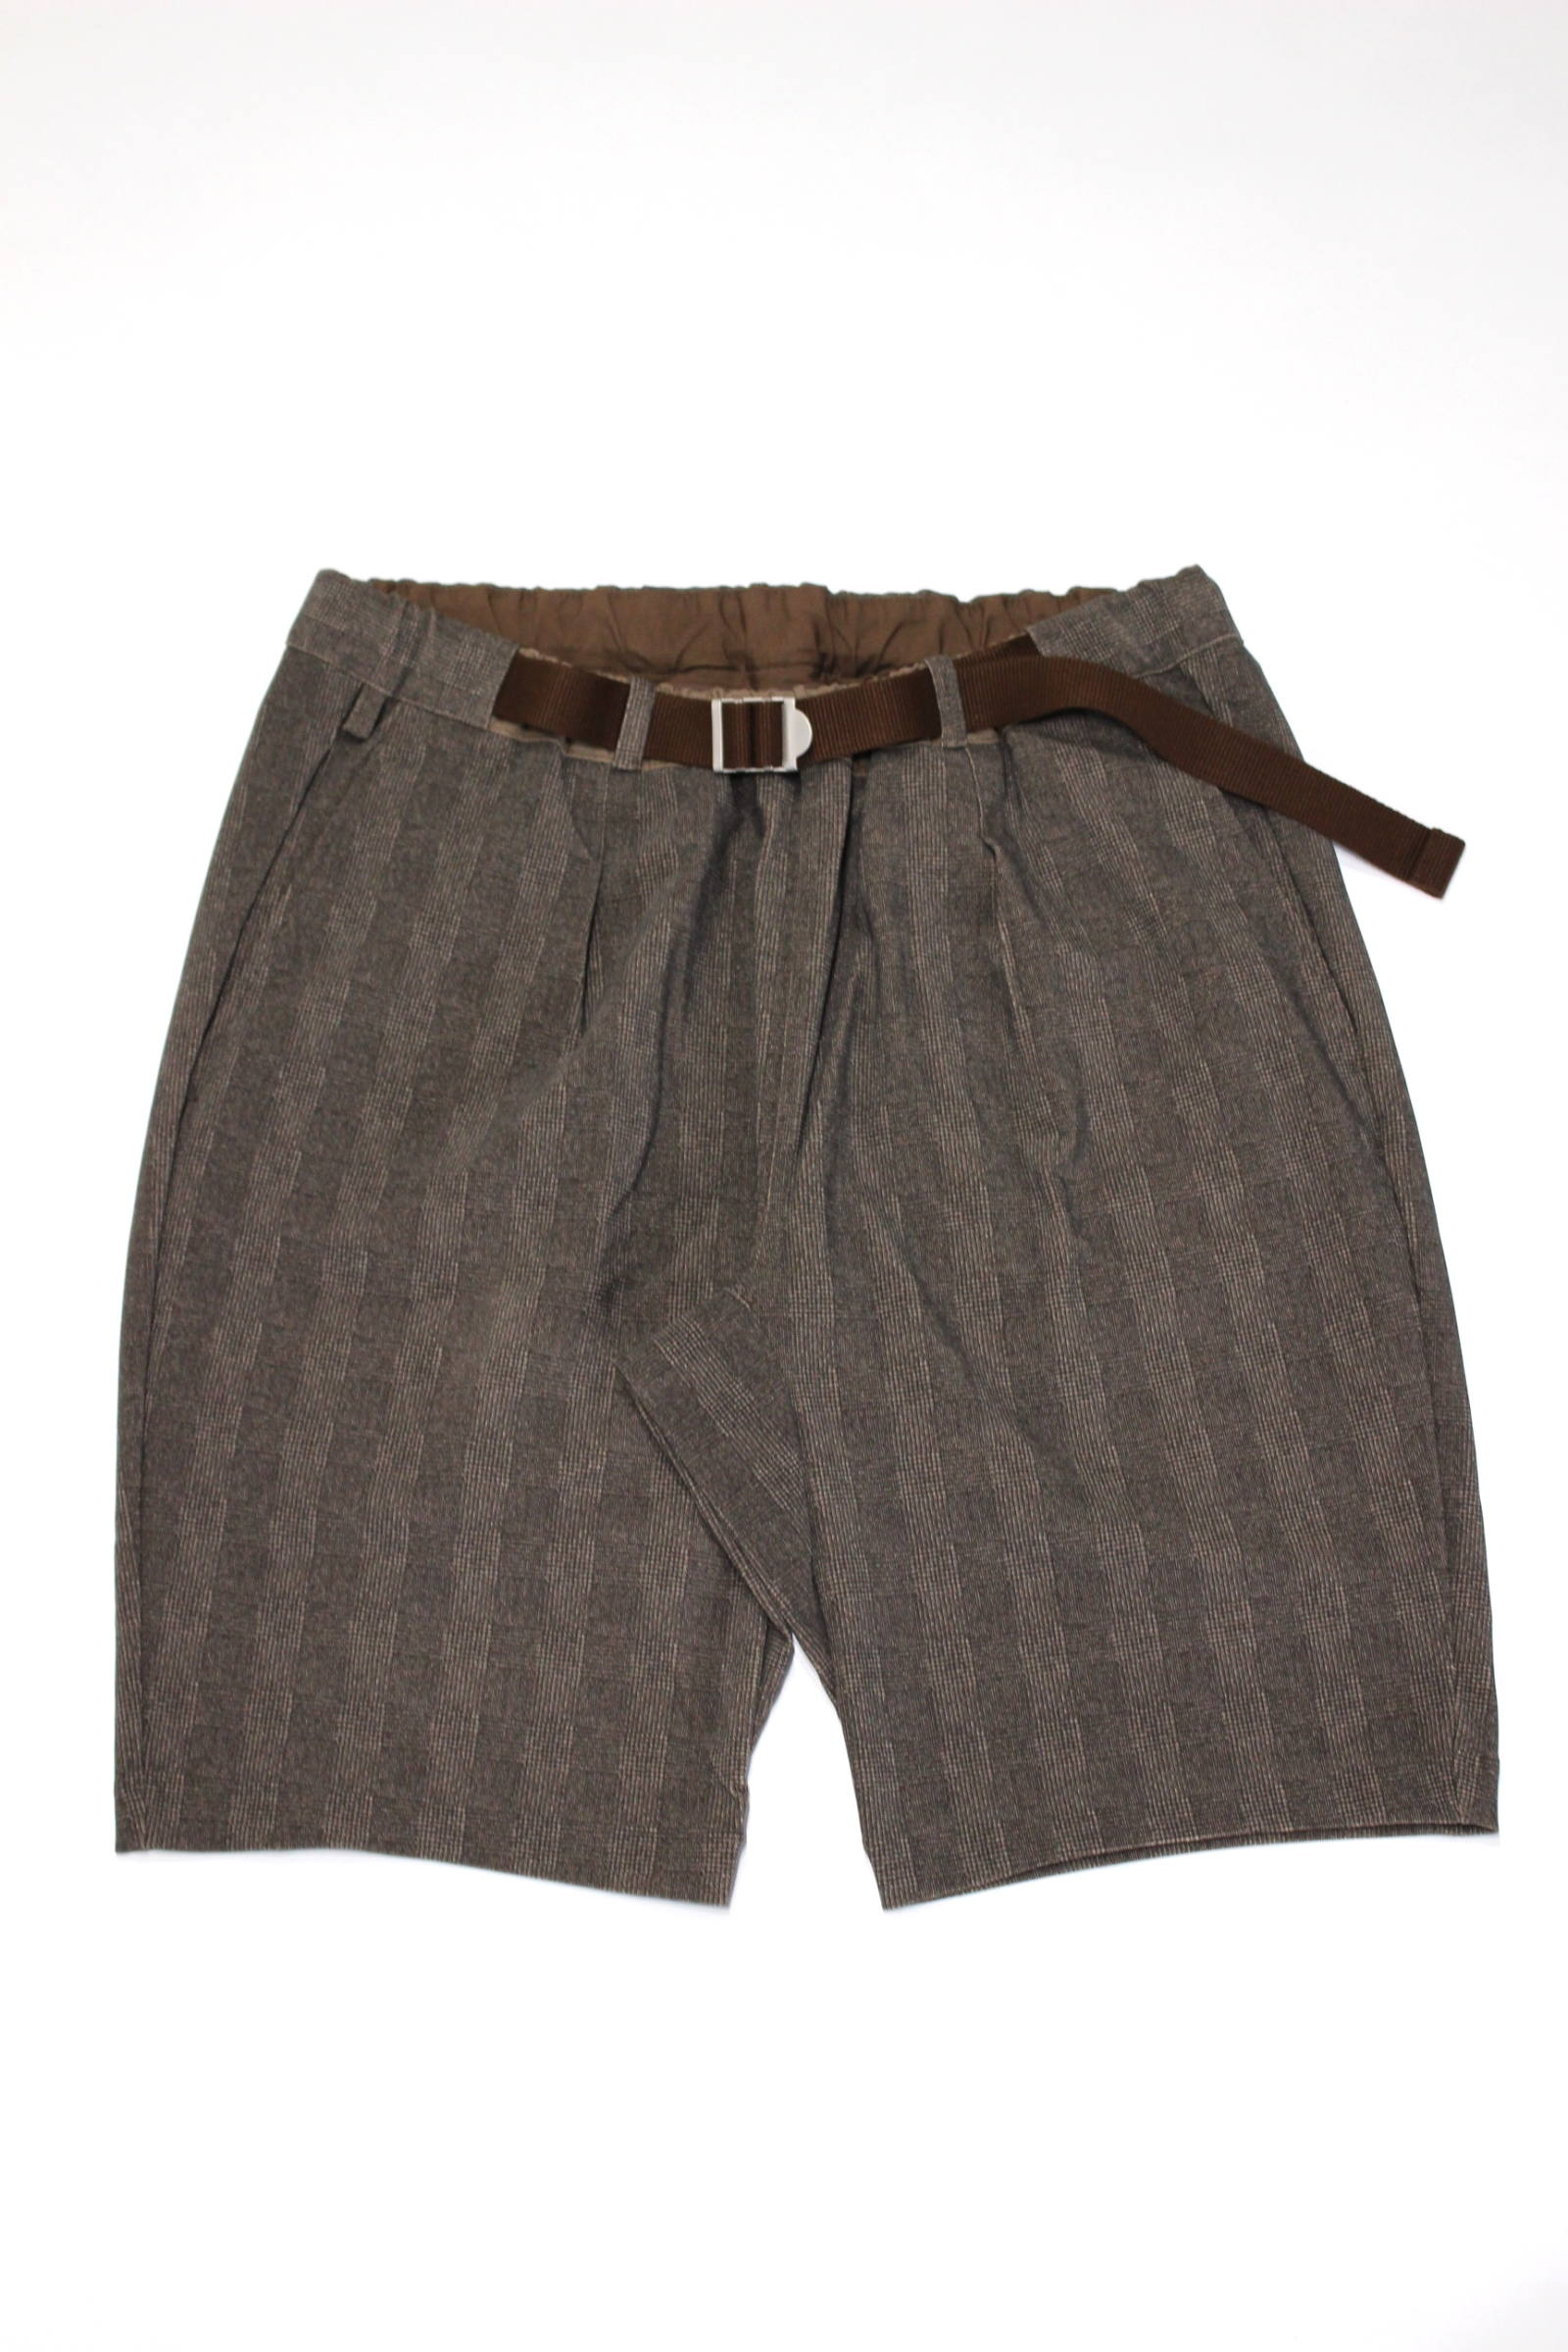 "BRIGHT EZ SHORTS ""GLEN CHECK""/ストレッチショーツ"